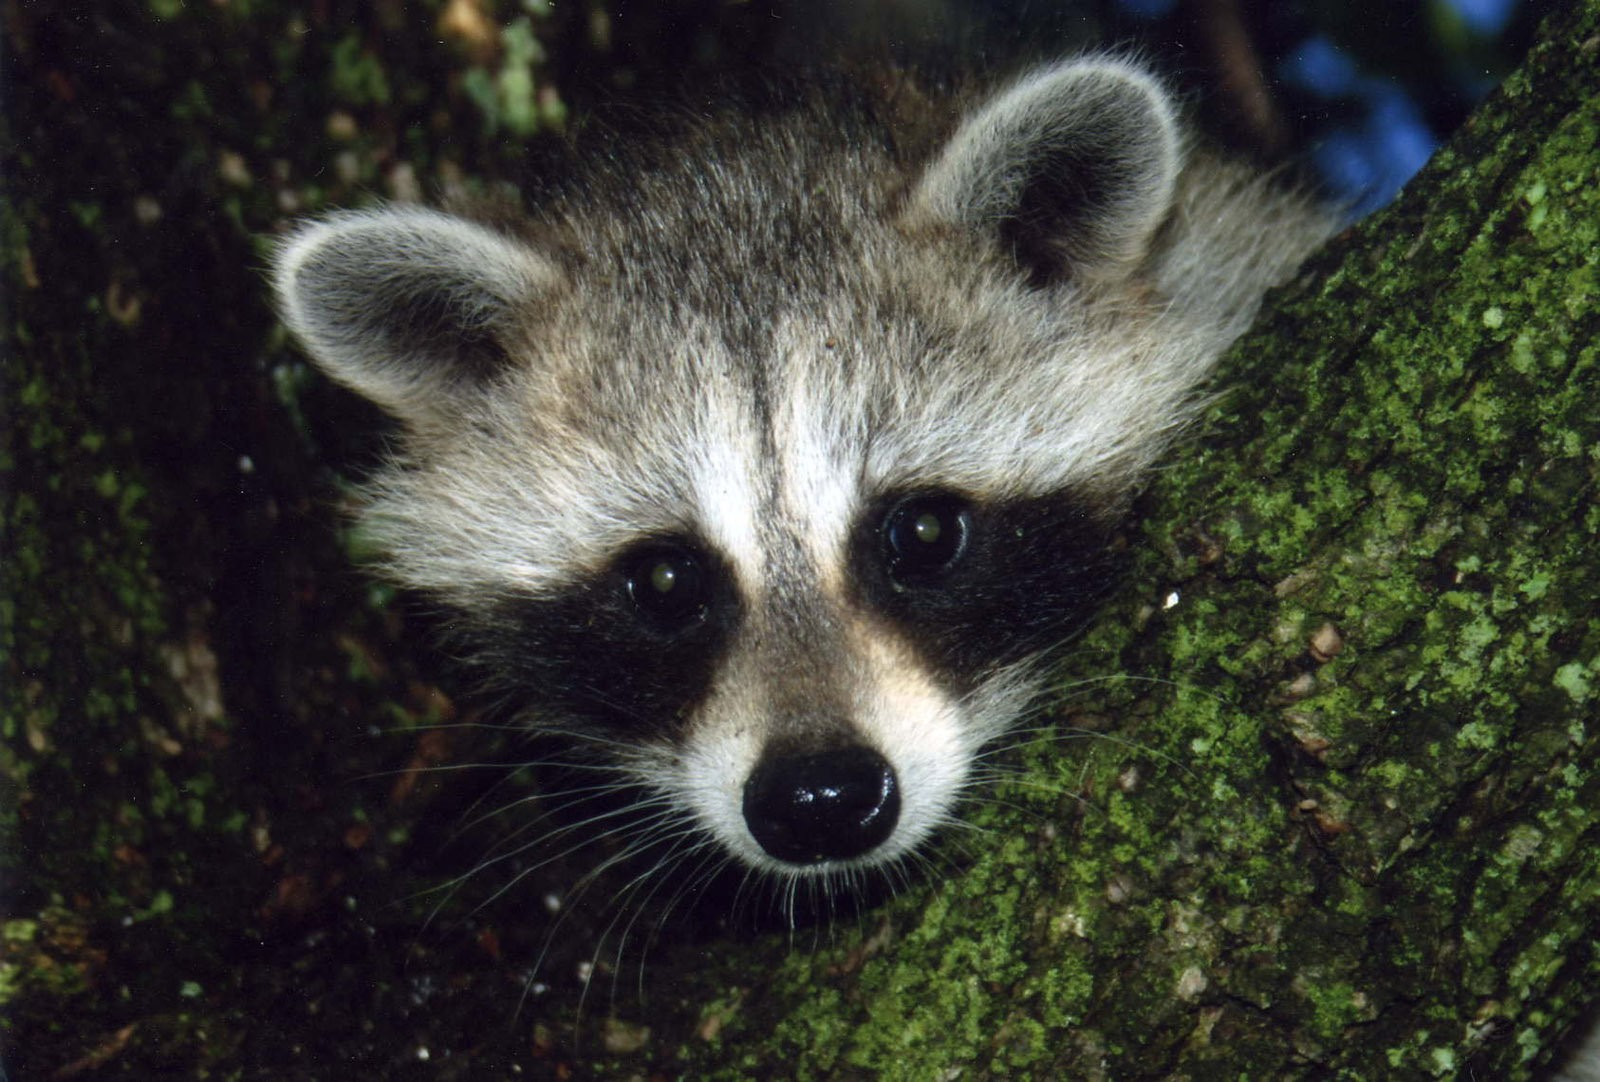 Alabama ending rehab of baby raccoons, other animals - al.com on retirement home, websites for iowa modular home, sheetrock installation home,